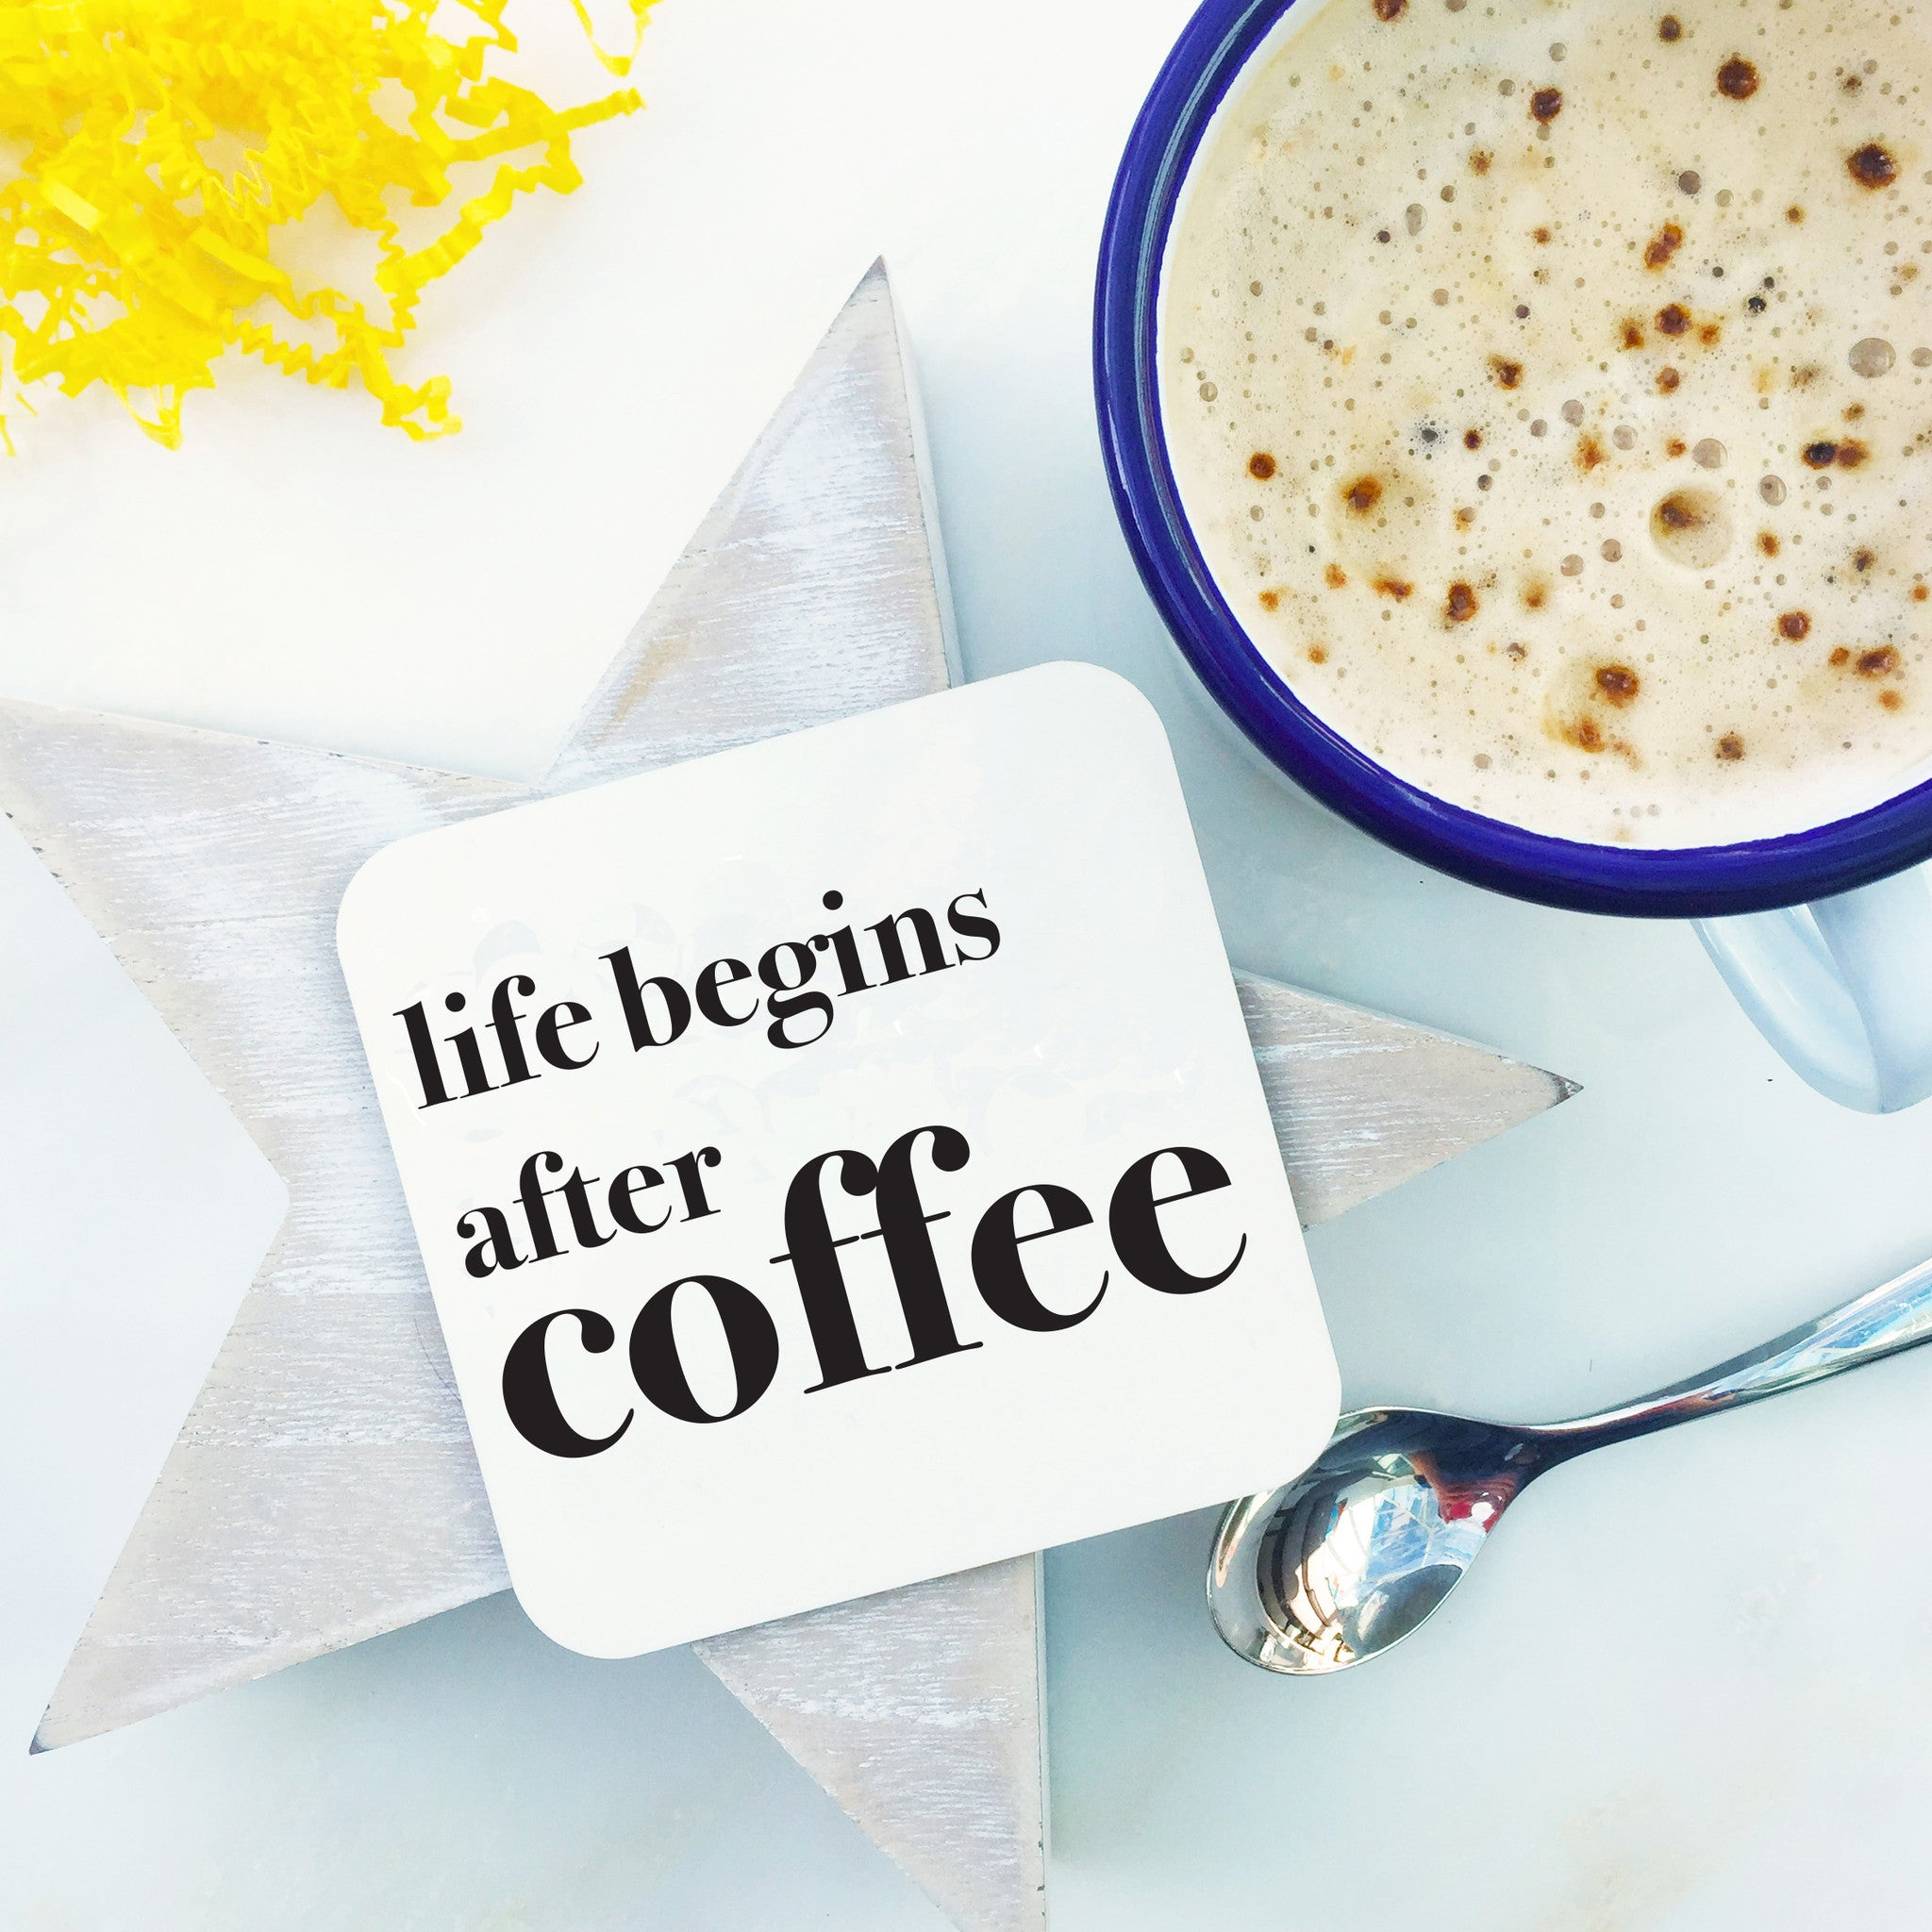 Life begins after coffee coaster coconutgrass for Gifts and homewares